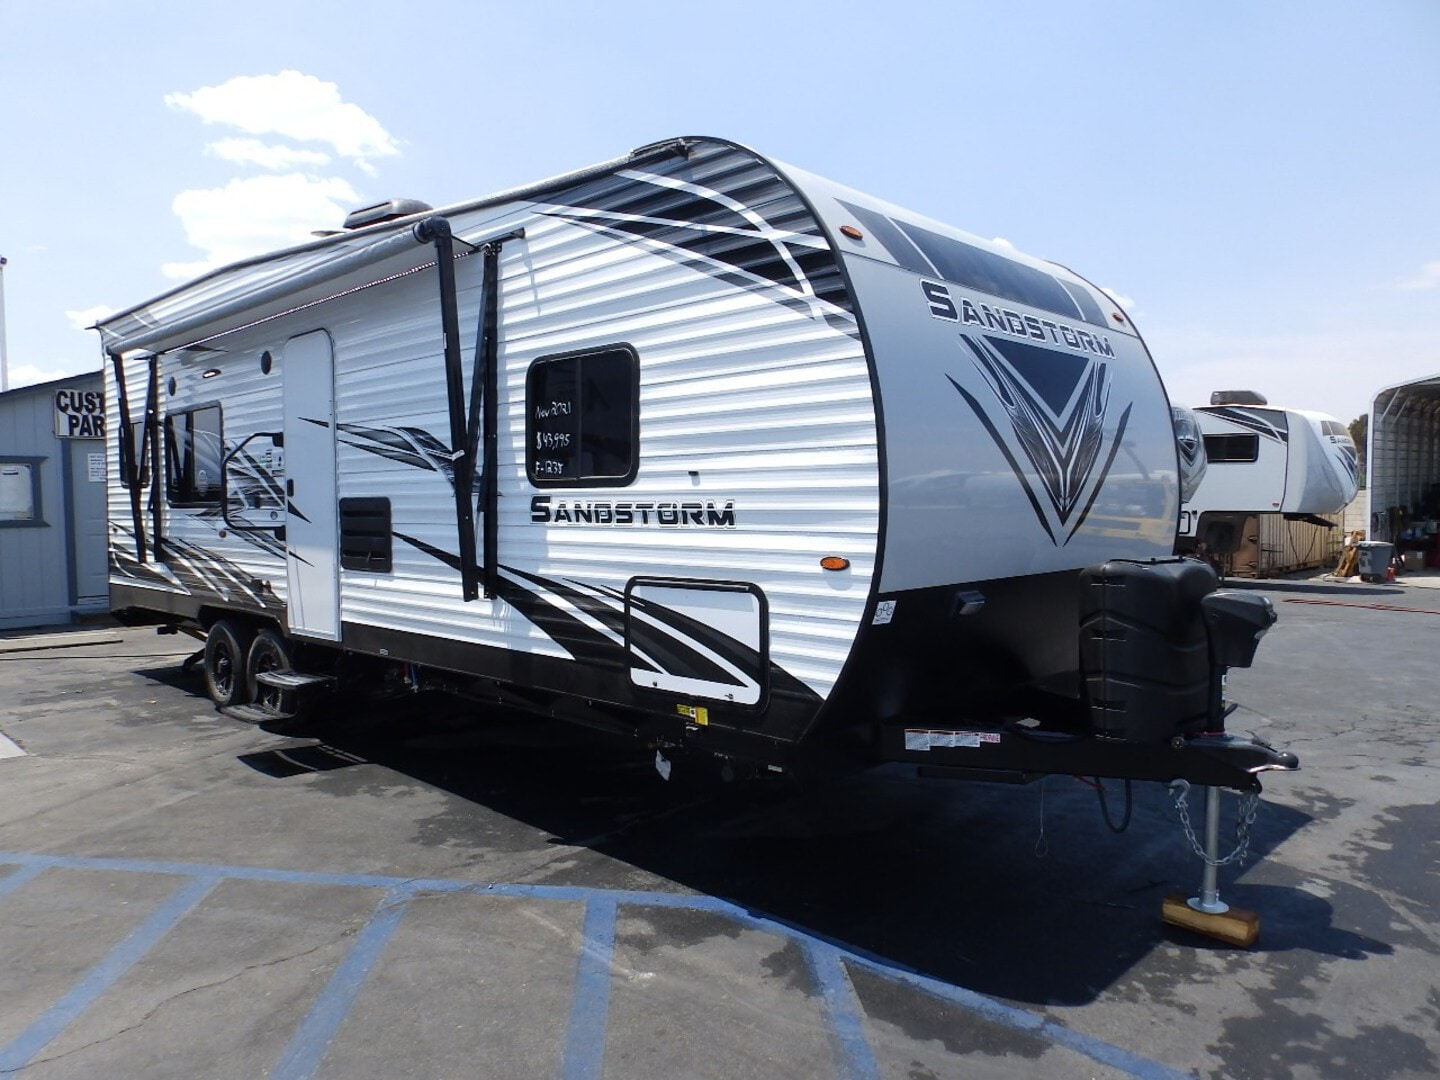 New, 2021, Forest River, SANDSTORM 251SLC, FRONT WALK AROUND QUEEN BED, REAR ELECTRIC DINETTE, CAPTAIN CHAIRS, 220 WATT SOLAR PANEL, ARCTIC PACKAGE, 4000 ONAN GENERATOR, Toy Haulers